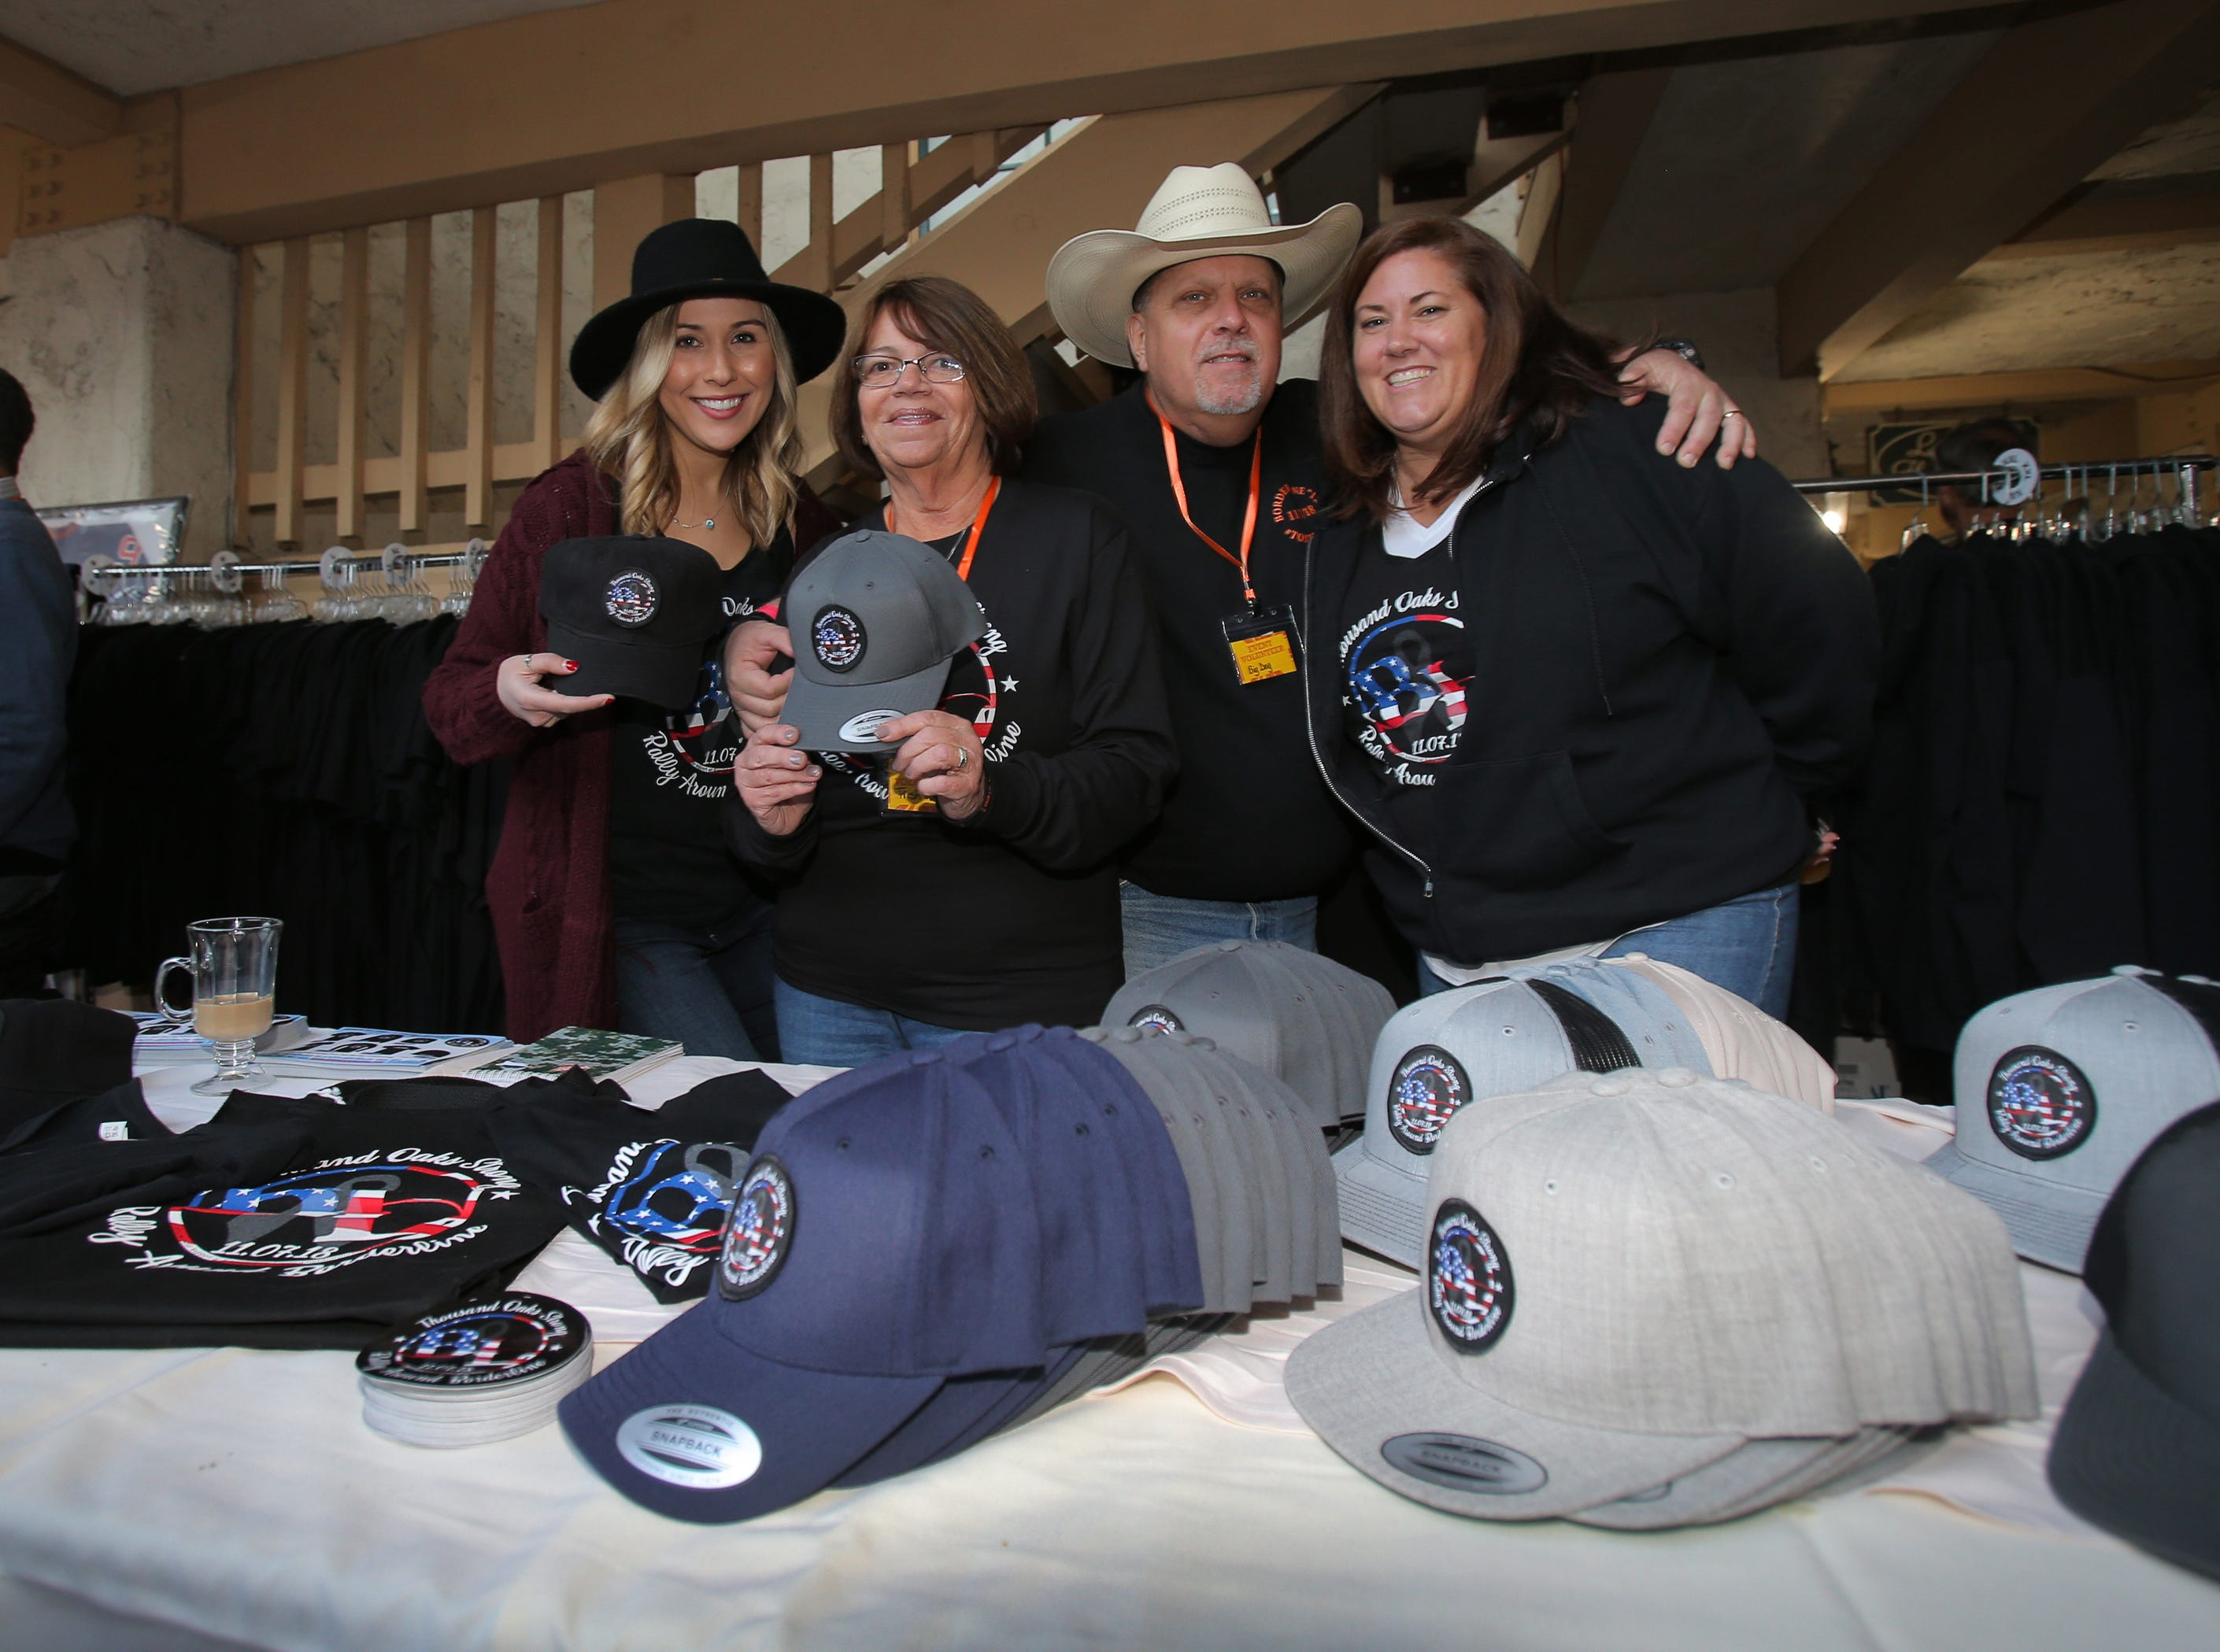 """American Cancer Society's Christine Trunick, from left, Trish Kuehl, John Short and Stacy Radke are just four of the many volunteers who helped out during the We Are Borderline Strong benefit at Boccaccio's Restaurant, The Westlake Yacht Club and The Landing in Westlake Village on Sunday. They were selling jackets, T-shirts and hats that read """"Thousand Oaks Strong; Rally Around Borderline."""" More than 800 guests attended the event that included food and drink and live entertainment provided by many local artists. All of the funds raised will go directly to the victims' families and survivors."""